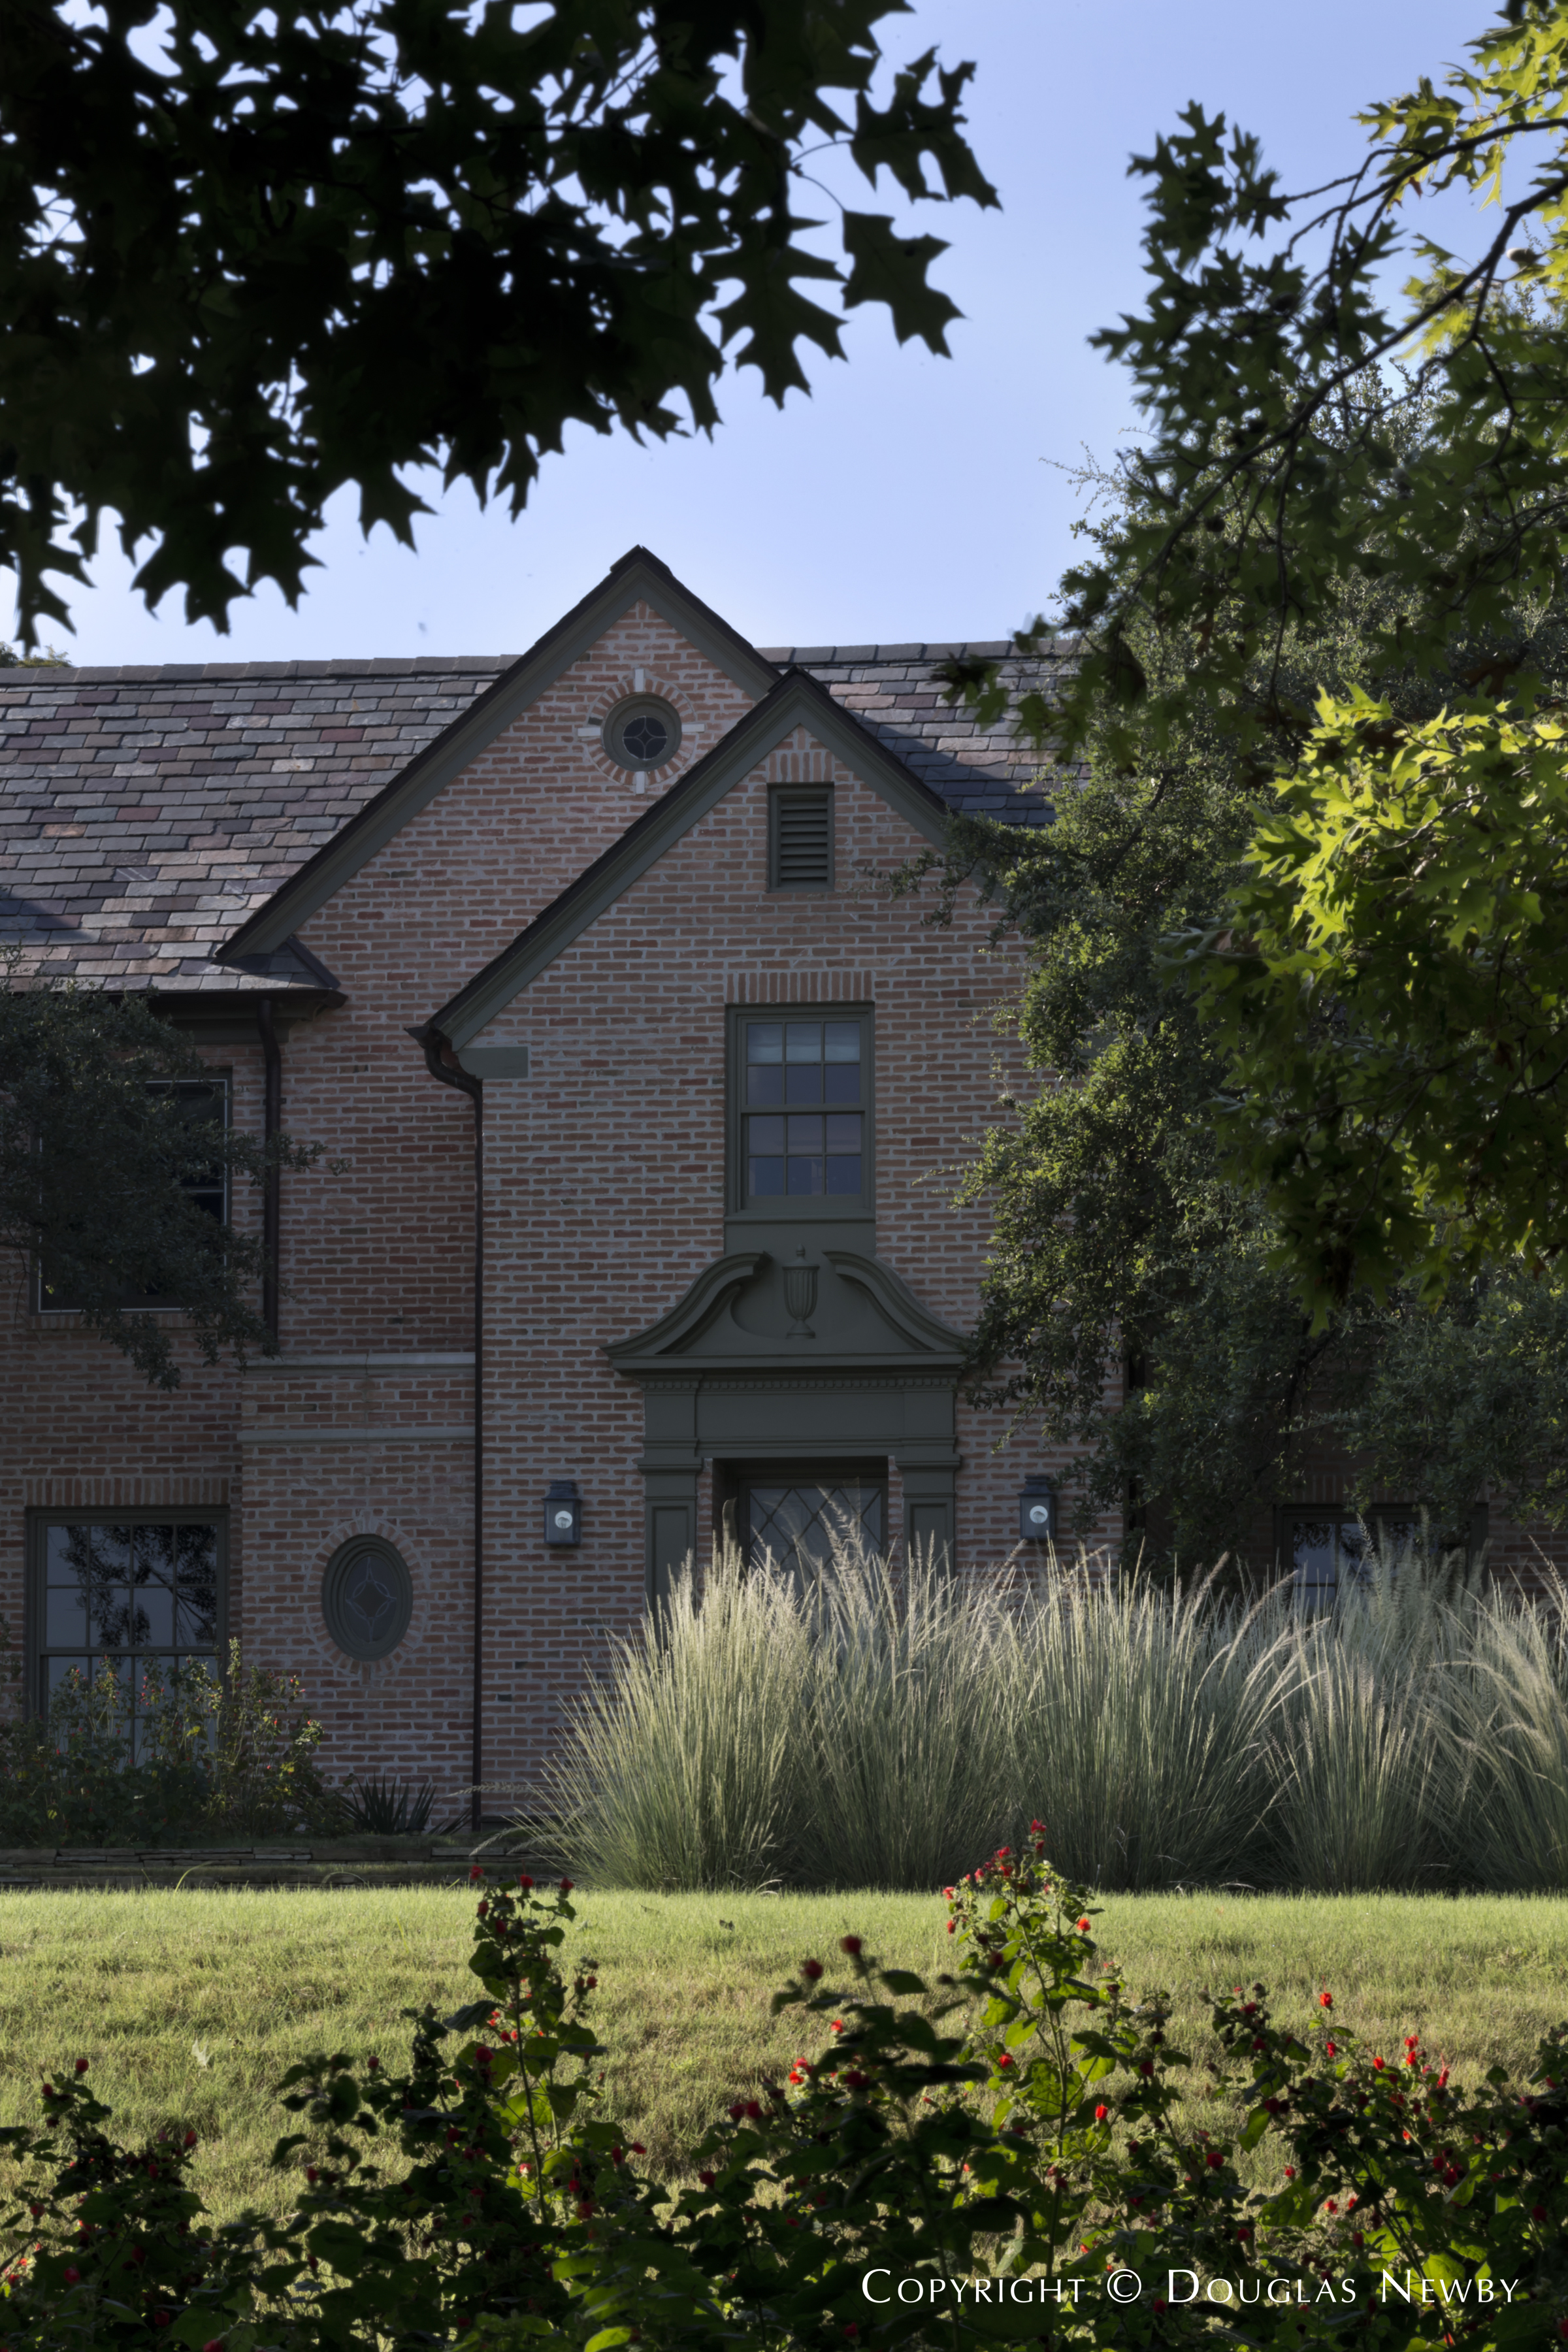 Architect Ted Larson Designed Home in White Rock Lake